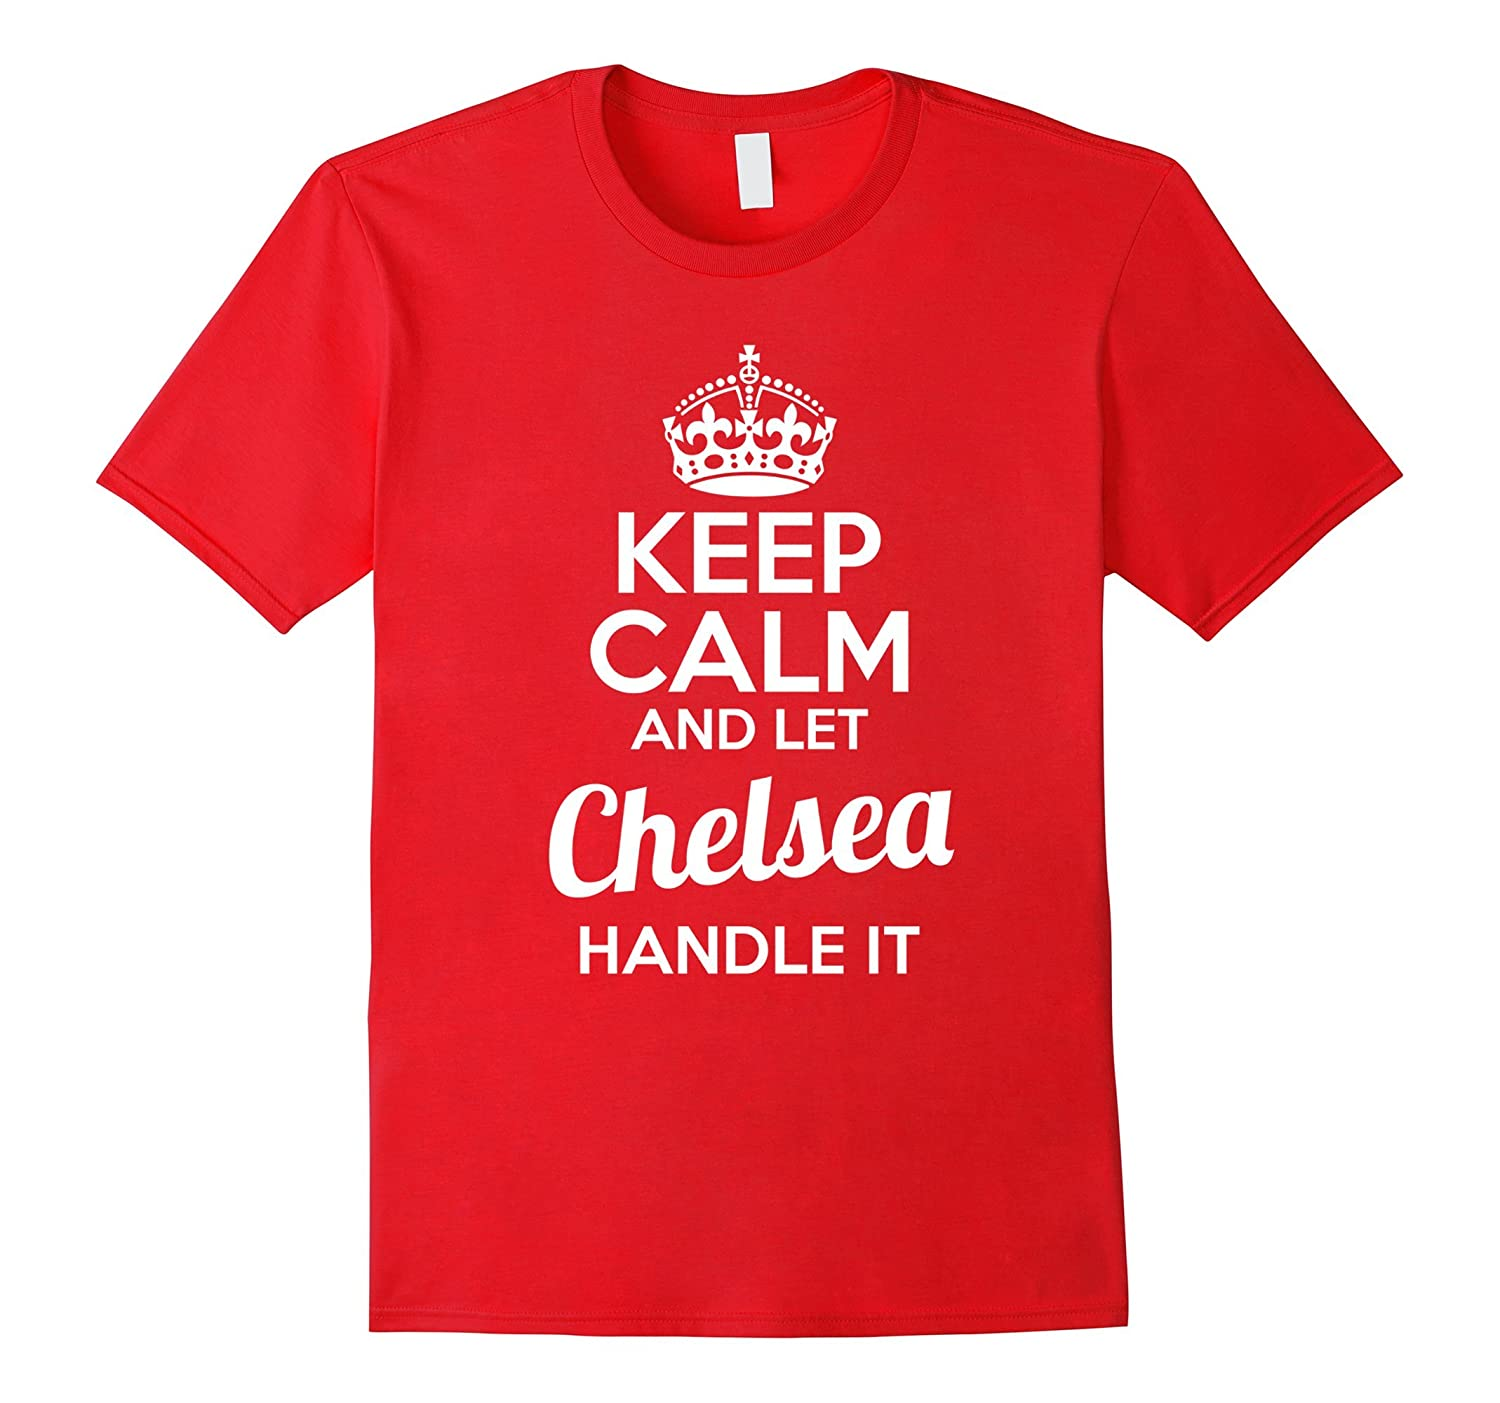 Chelsea T-Shirt Keep Calm and Let Chelsea Handle It-ANZ